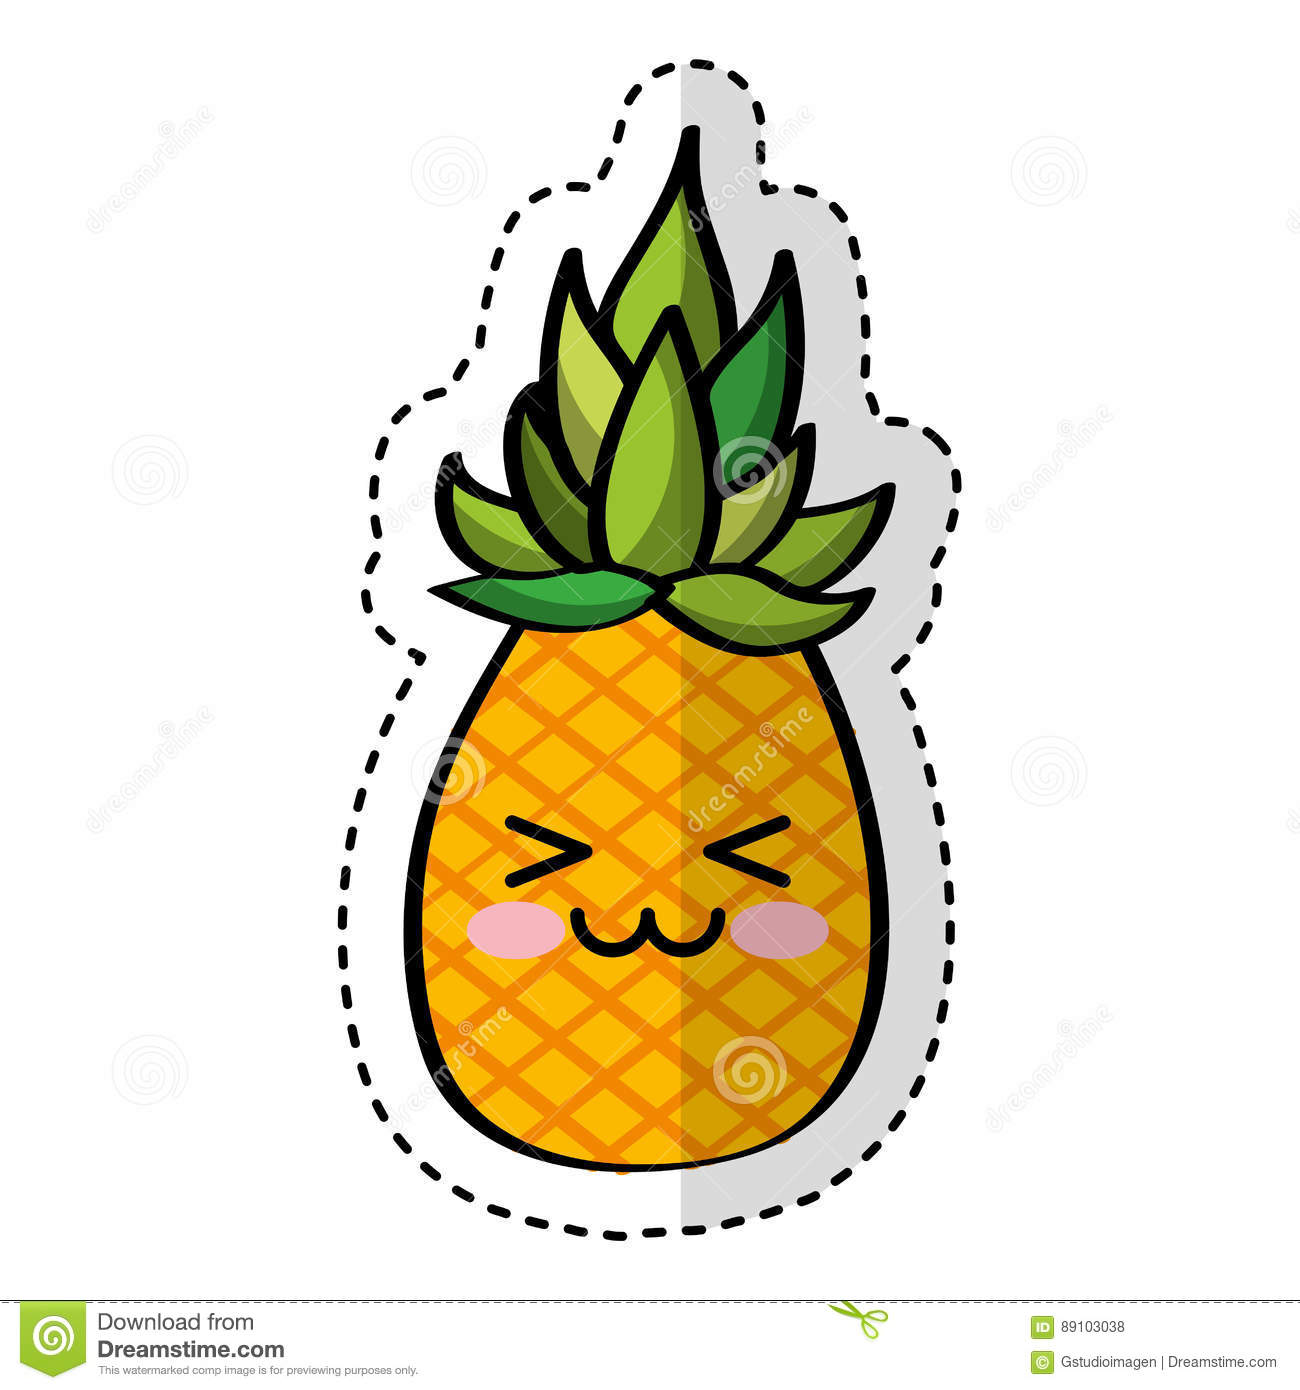 Fruit Clipart Cute Pencil And In Color Fruit Clipart Cute